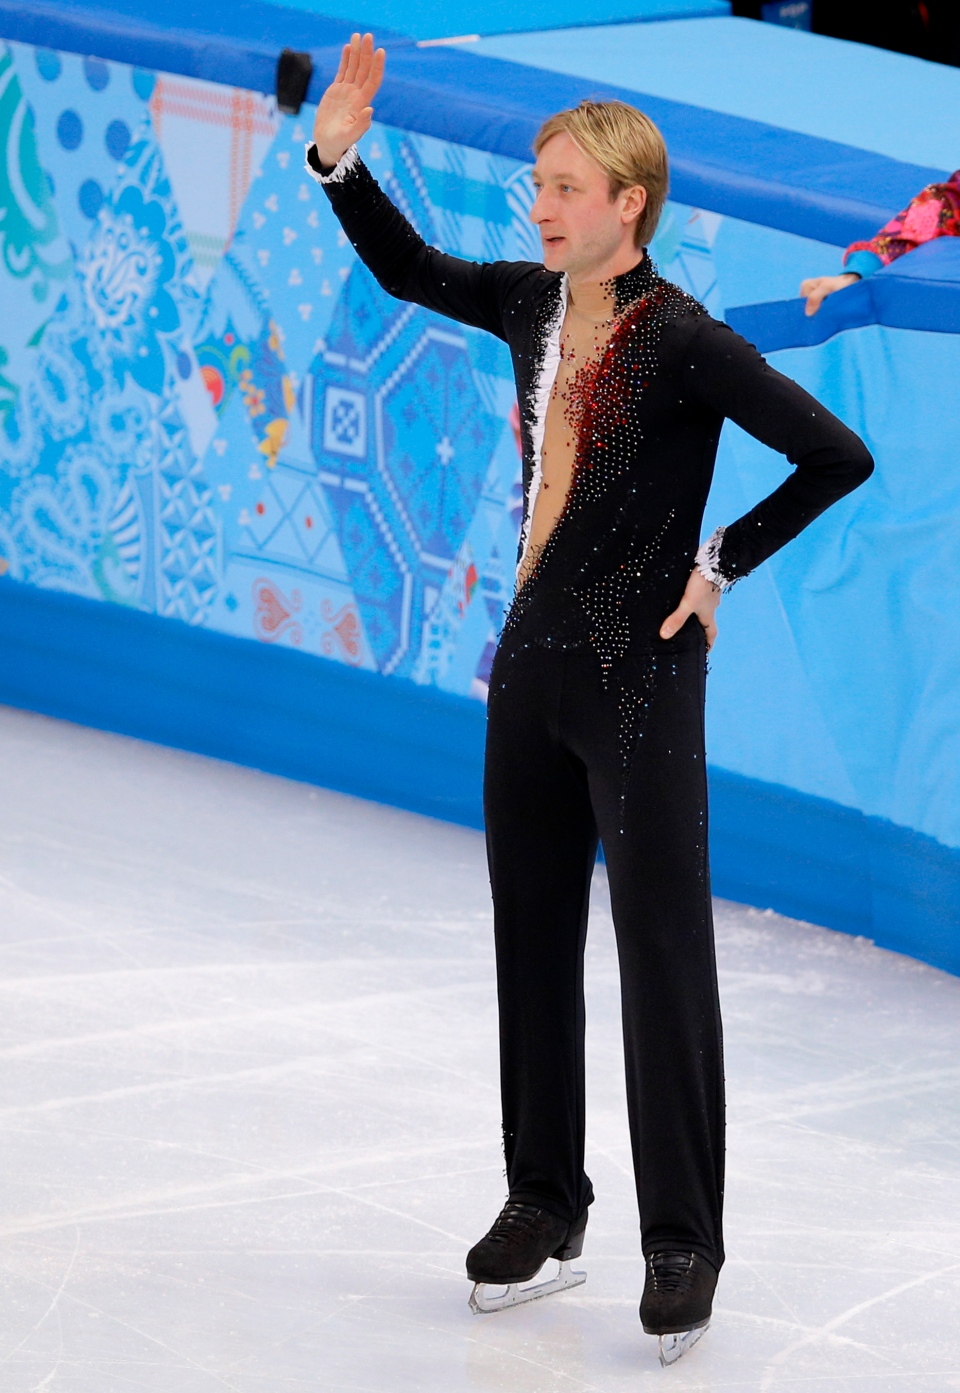 Evgeni Plushenko of Russia leaves the ice after pulling out of the men's short program figure skating competition due to illness at the Iceberg Skating Palace during the 2014 Winter Olympics, Thursday, Feb. 13, 2014, in Sochi, Russia. (AP Photo/Vadim Ghirda)